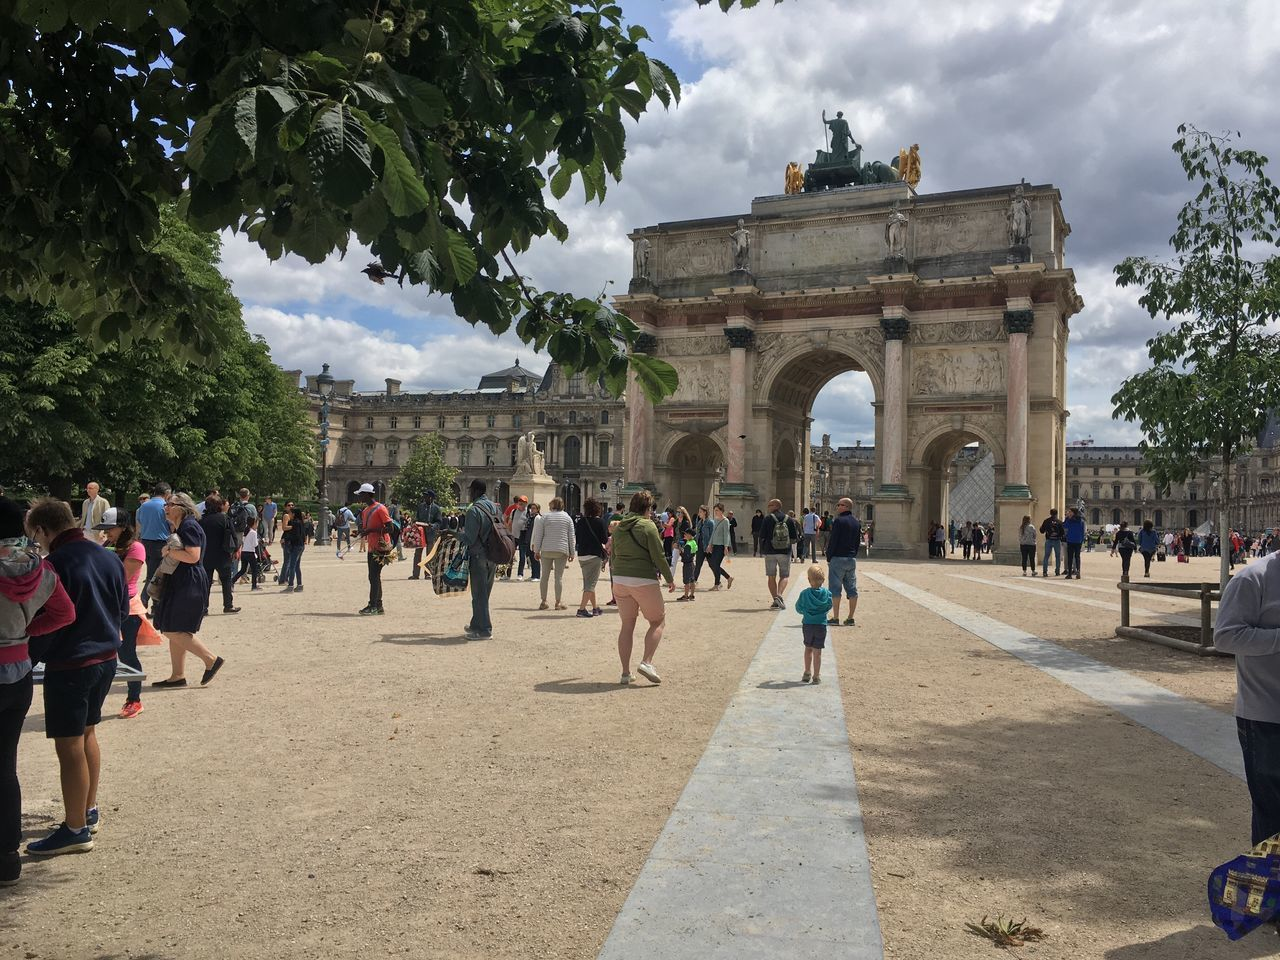 large group of people, travel destinations, tourism, cloud - sky, triumphal arch, history, sky, travel, real people, architecture, built structure, monument, arch, mixed age range, day, leisure activity, outdoors, vacations, women, men, tree, building exterior, people